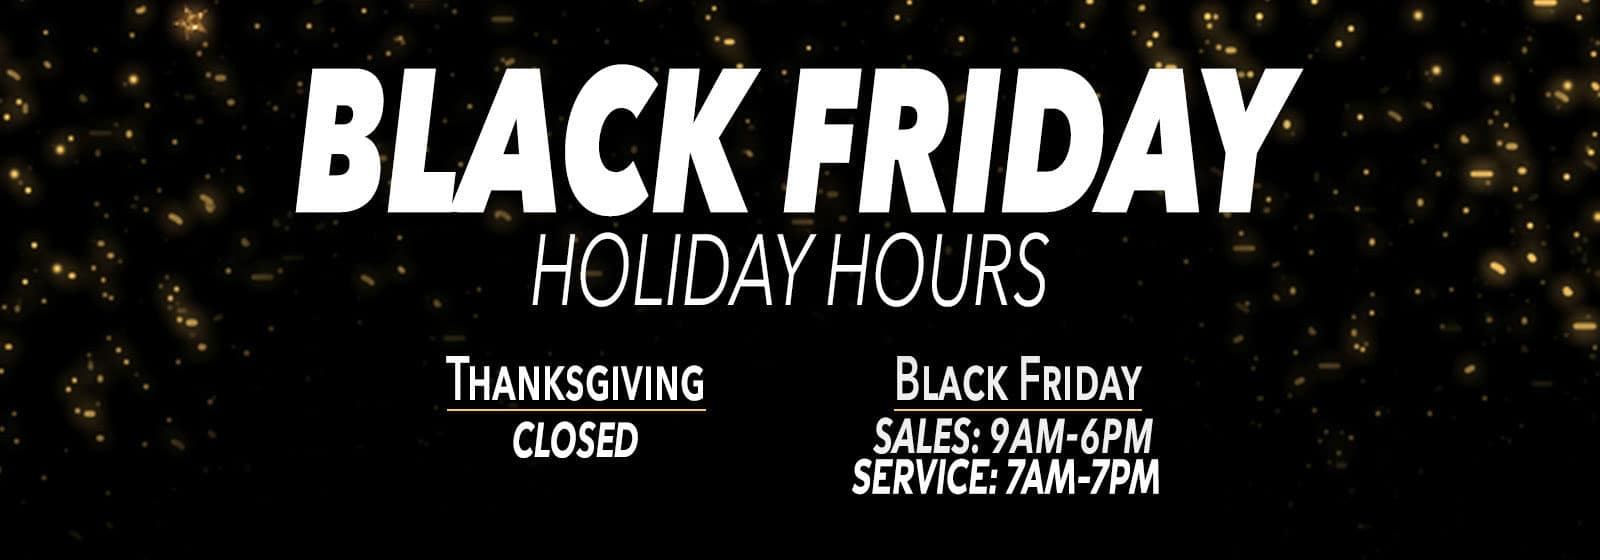 Black Friday Holiday Hours